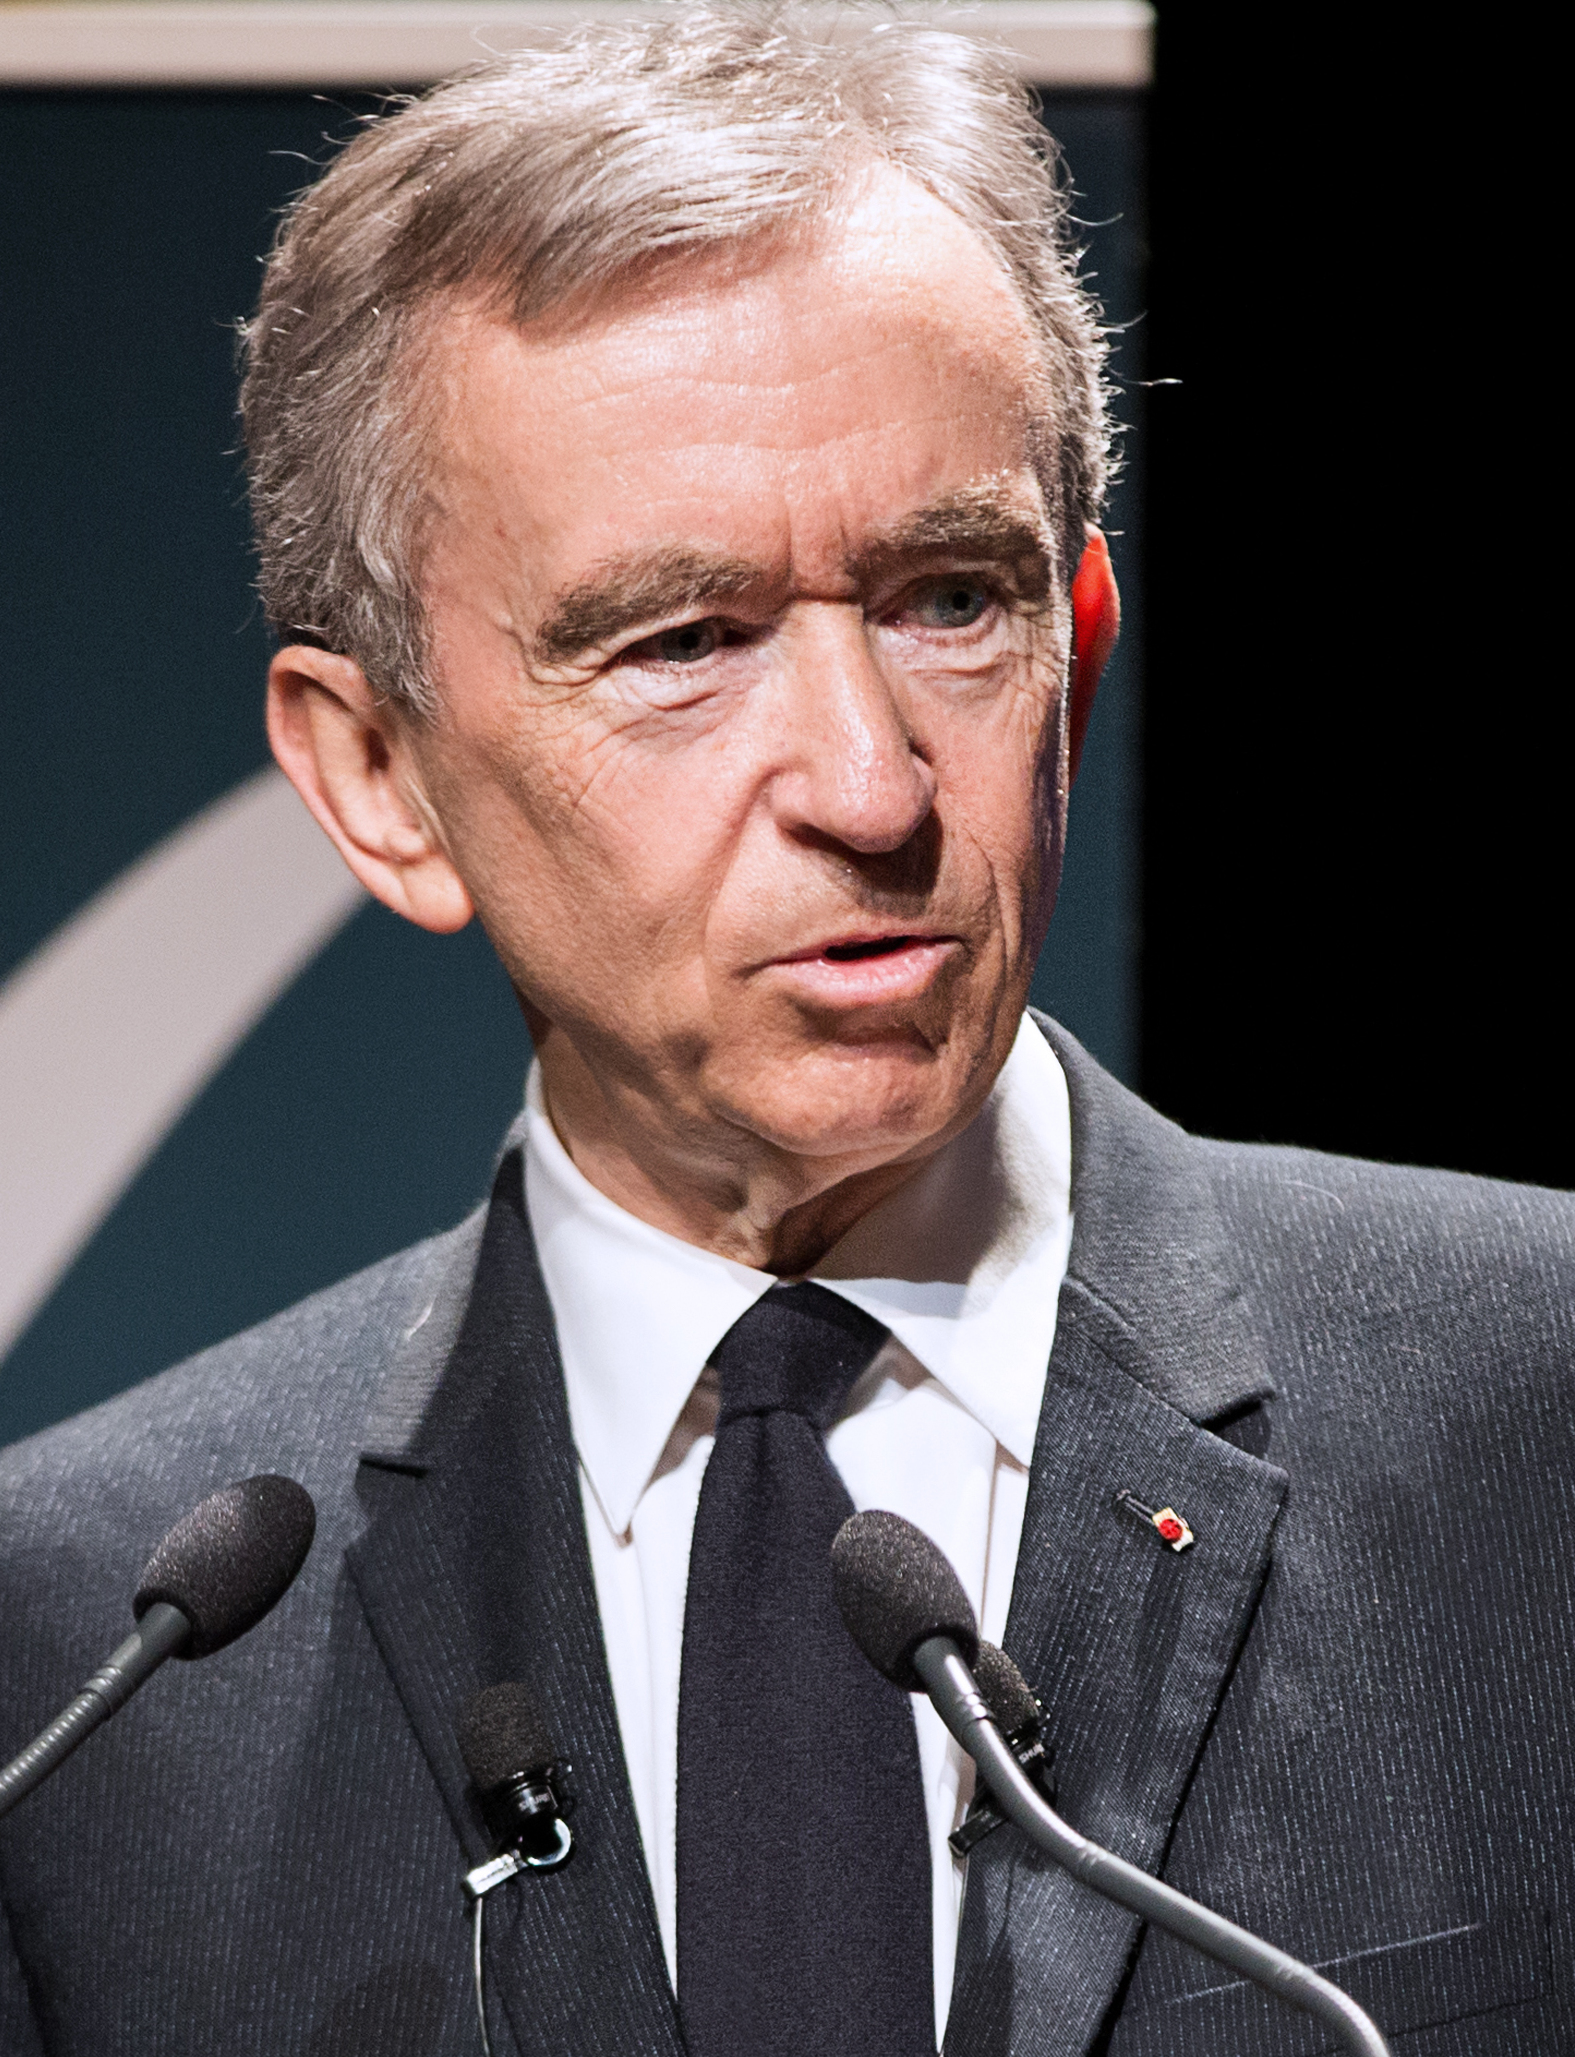 The 71-year old son of father Jean Arnault and mother(?) Bernard Arnault in 2020 photo. Bernard Arnault earned a  million dollar salary - leaving the net worth at 37000 million in 2020